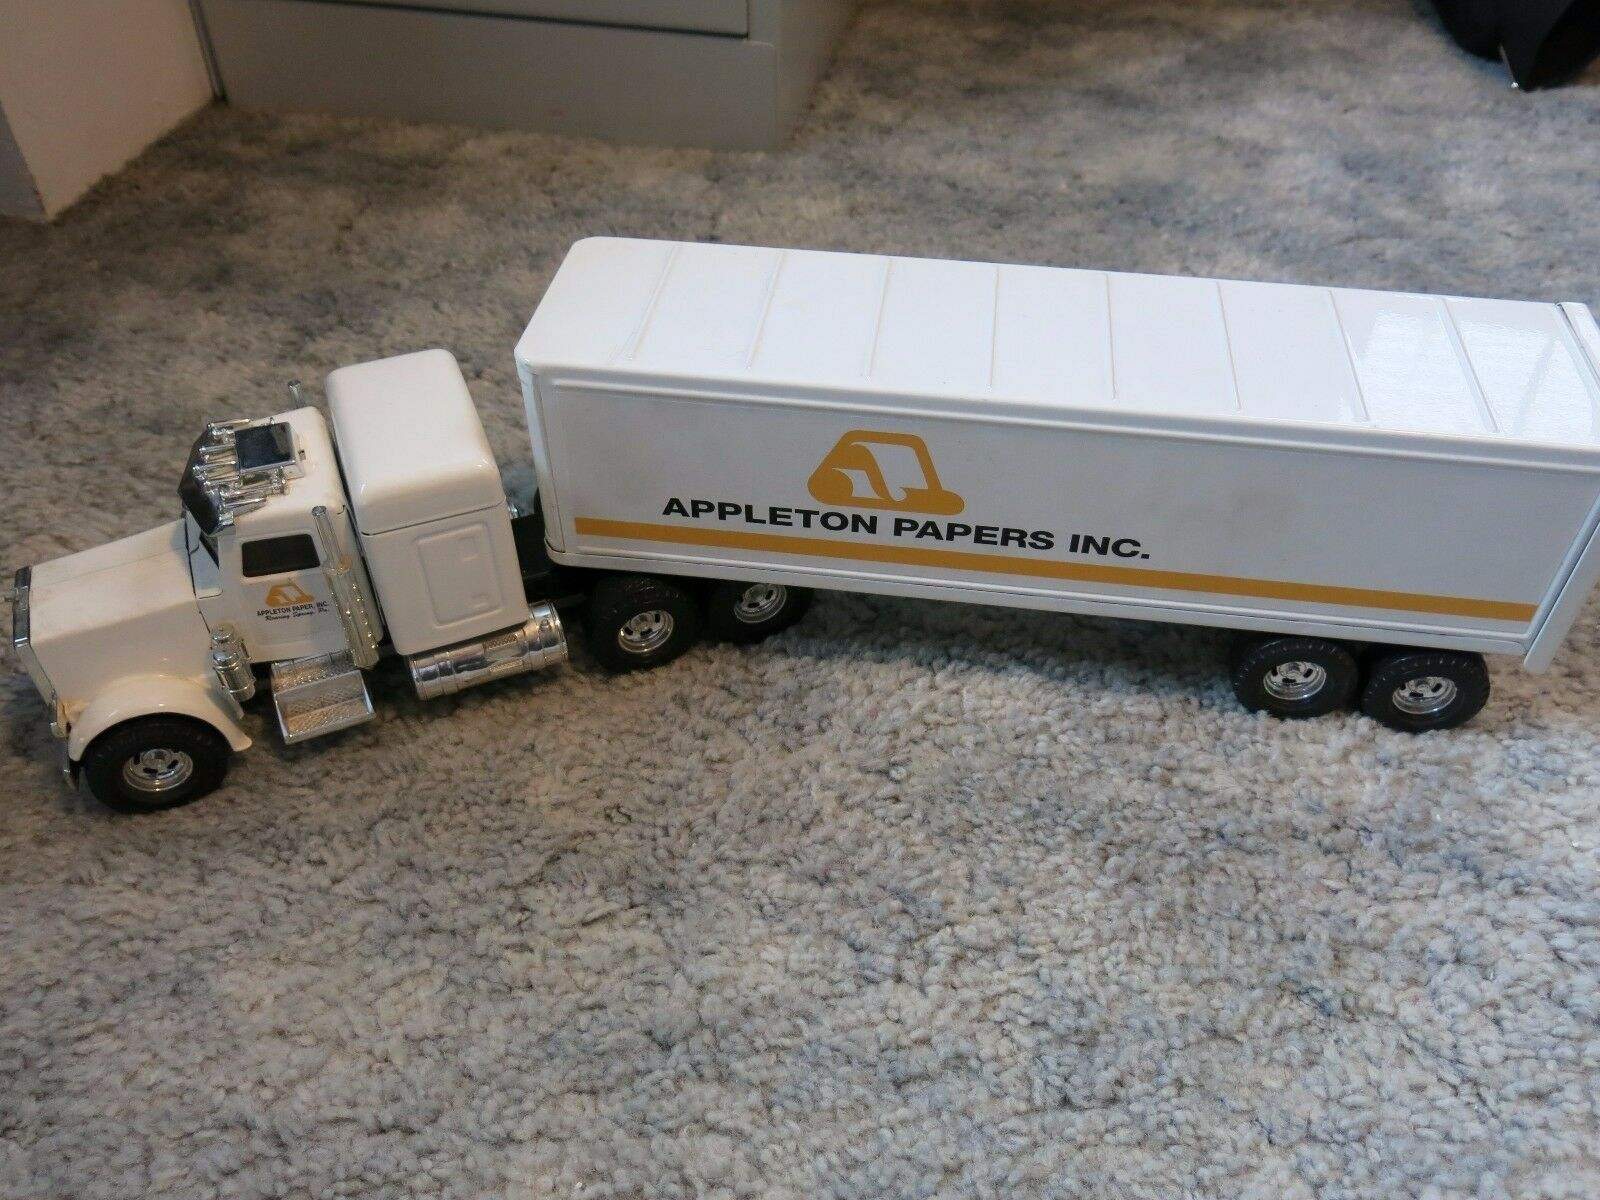 APPLETON PAPERS ROARING SPRING STEEL TRACTOR TRAILER RIG EXCELLENT CONDITION